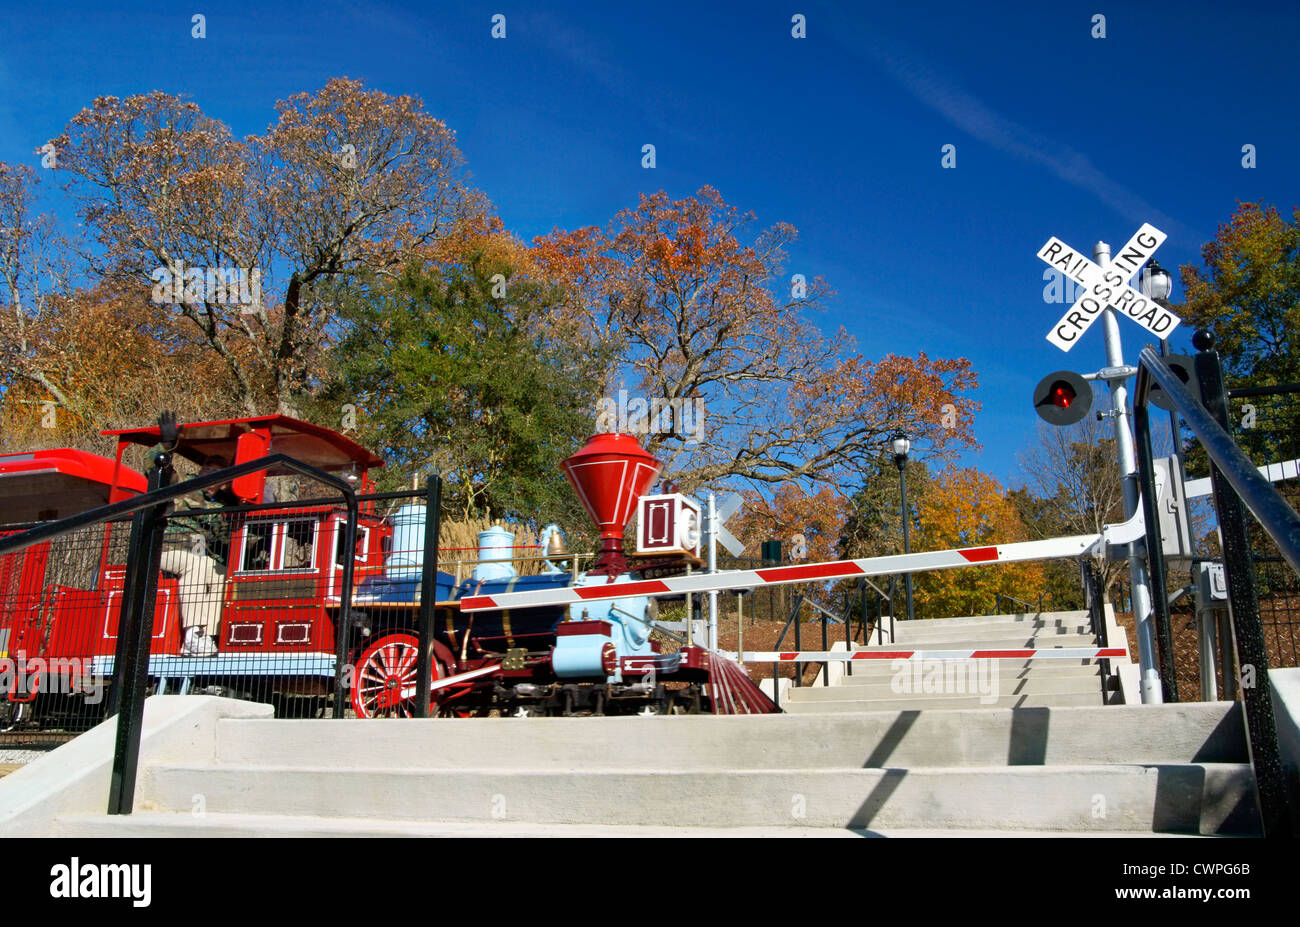 Raleigh, NC, North Carolina. Miniature train in Pullen park at railroad crossing. - Stock Image